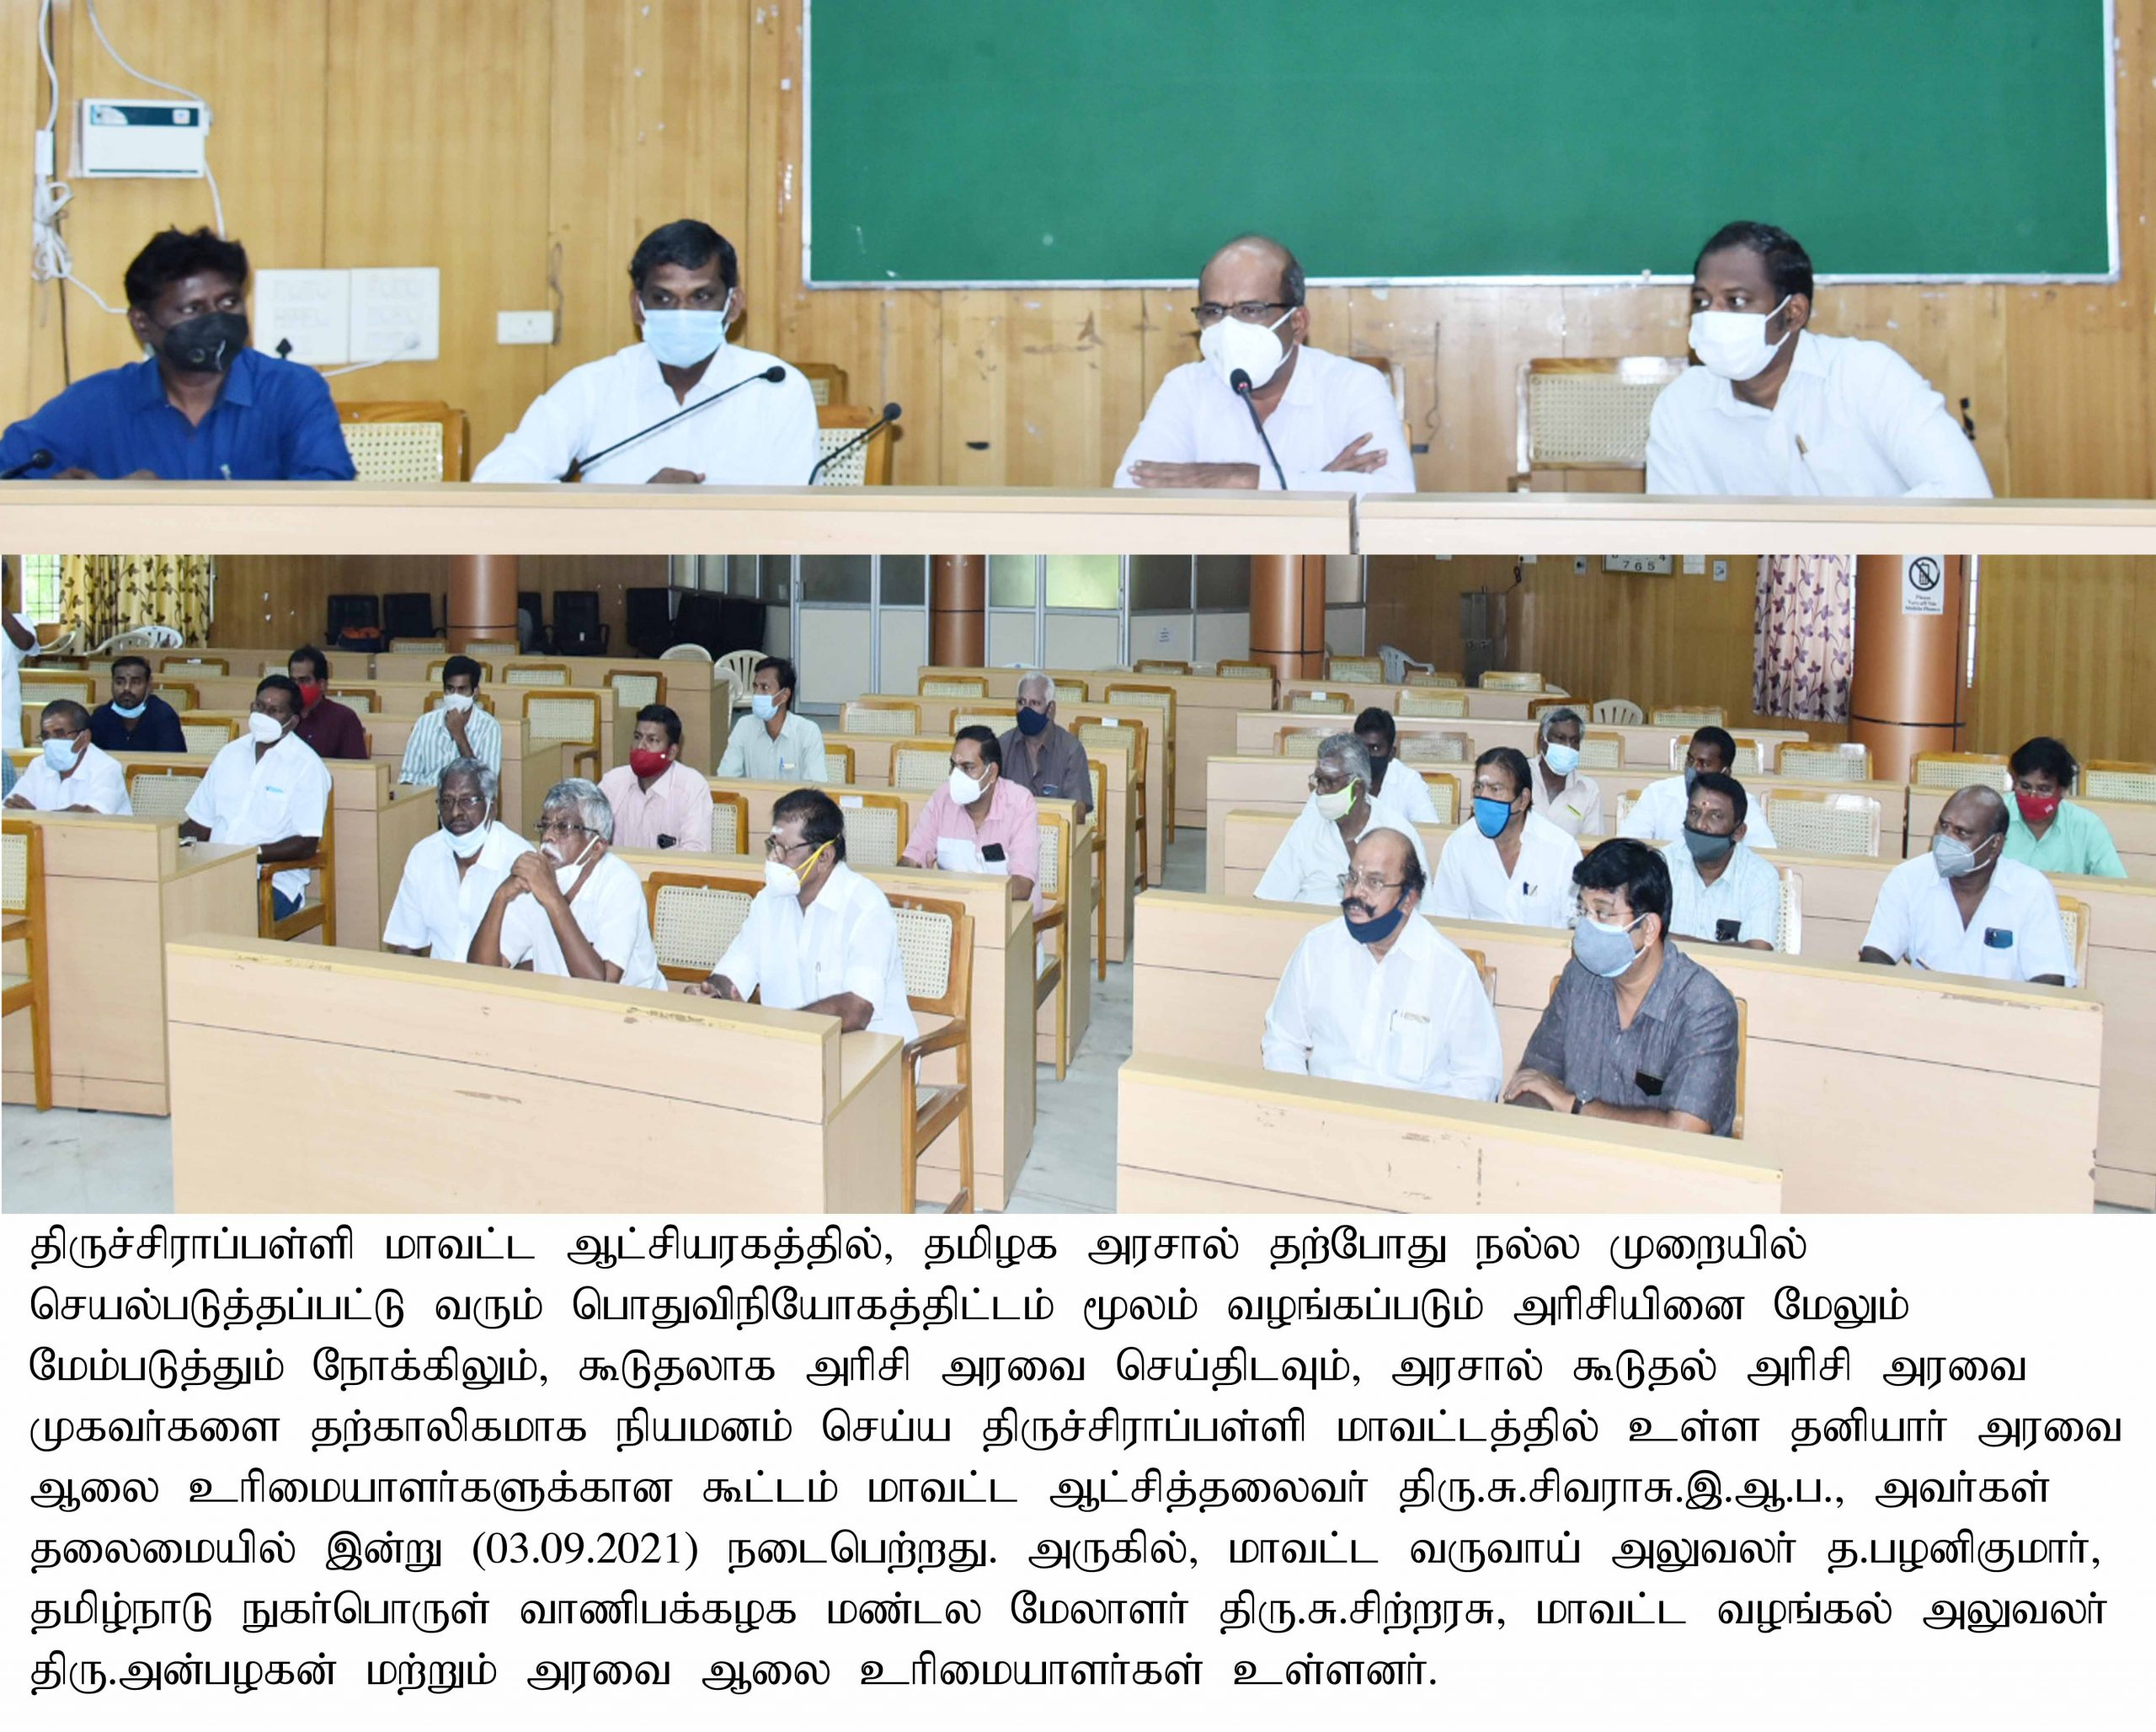 Meeting was held under the chairmanships of Districts Collector on 06-09-2021